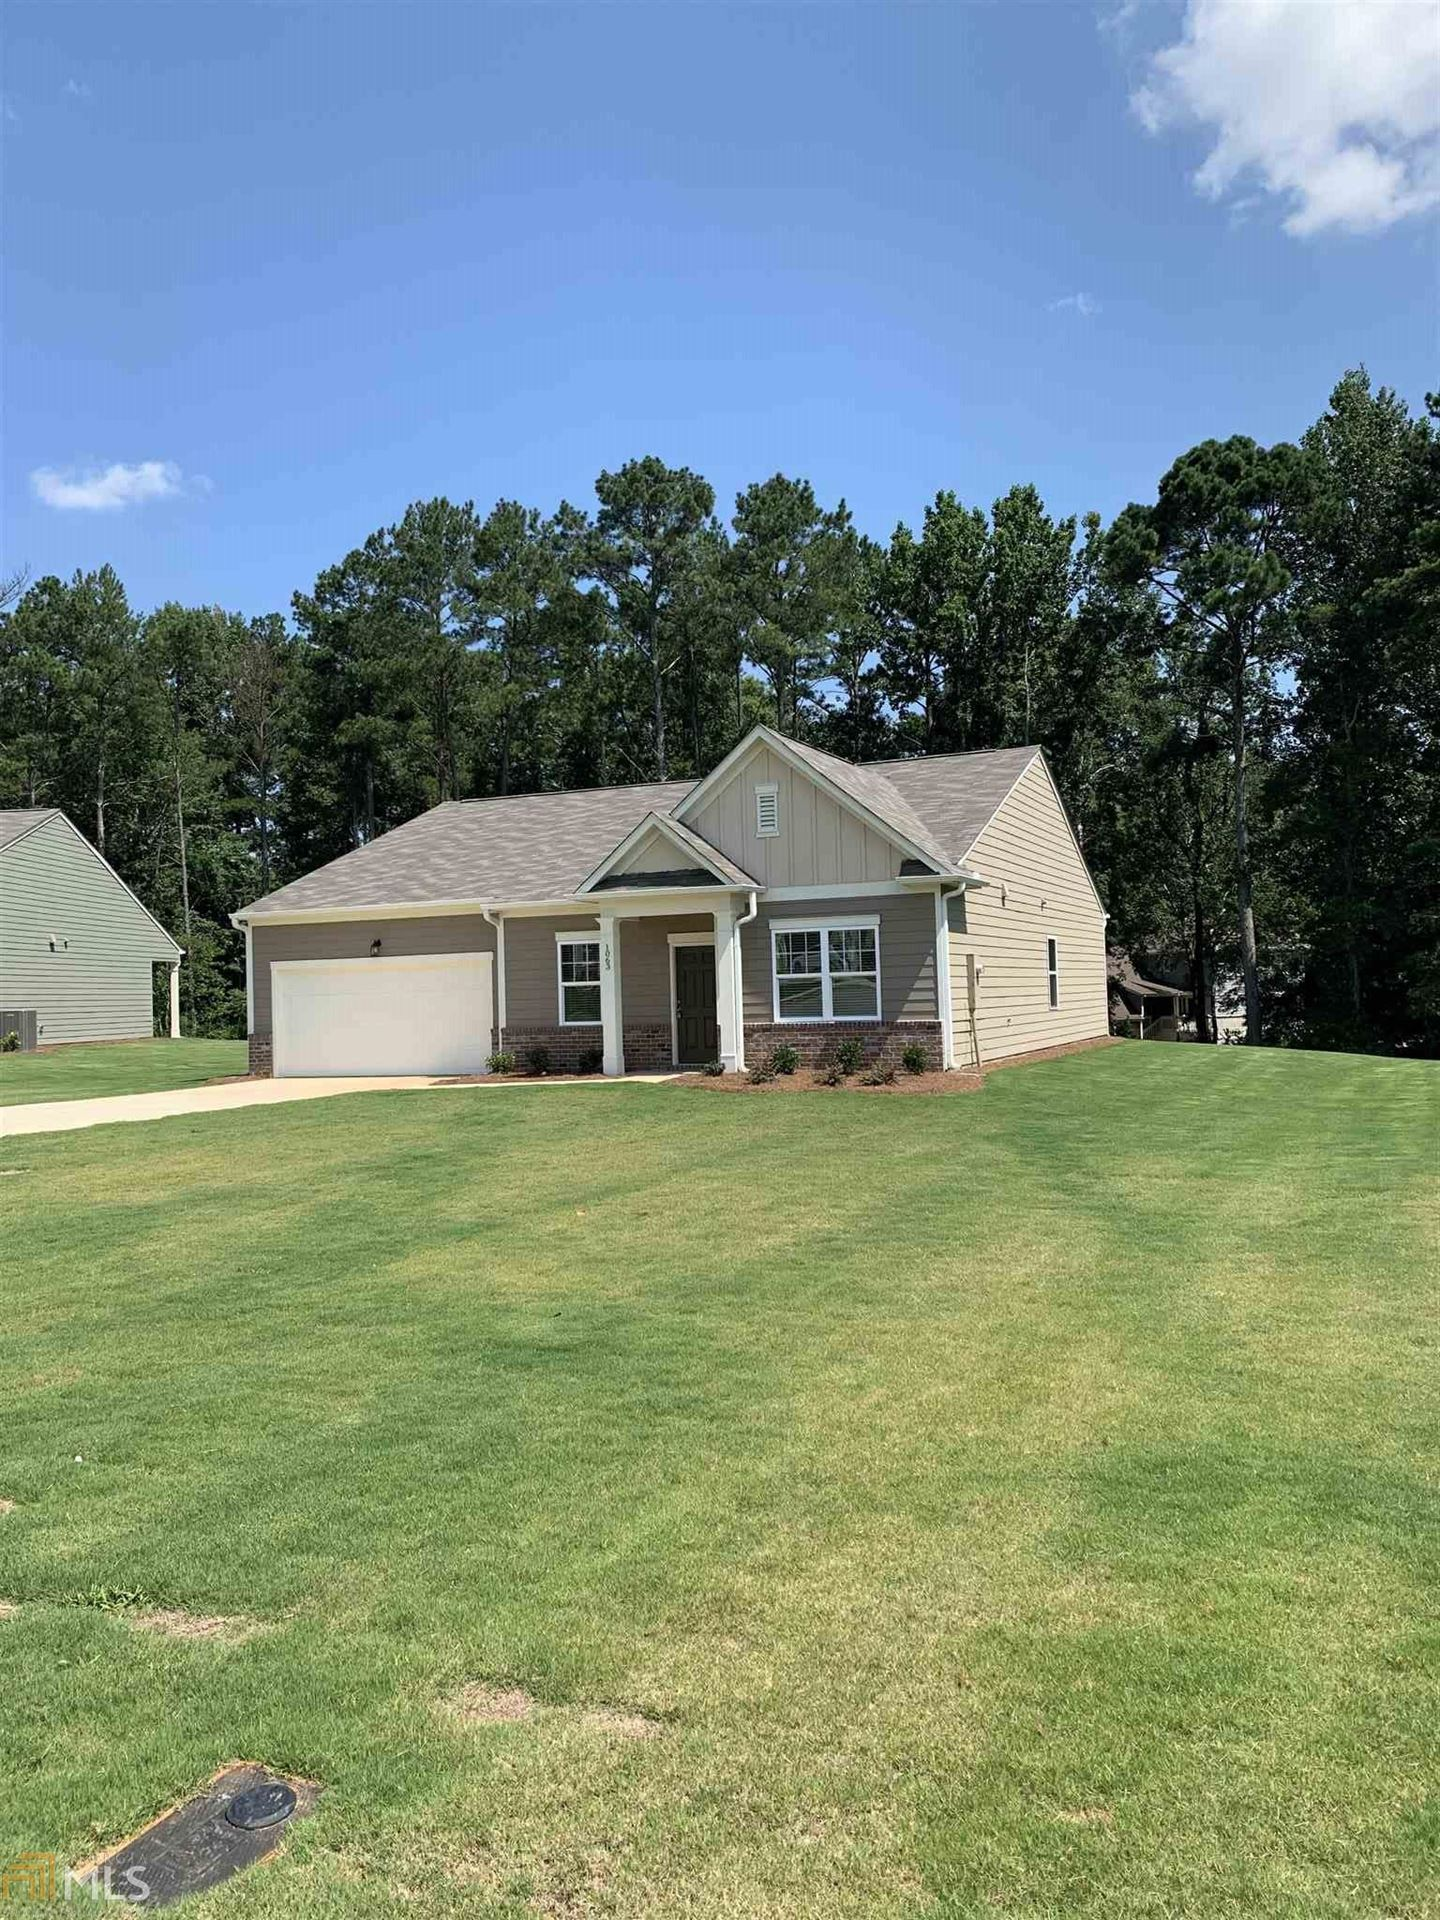 1063 Coldwater Dr, Griffin, GA 30224 - #: 8760245